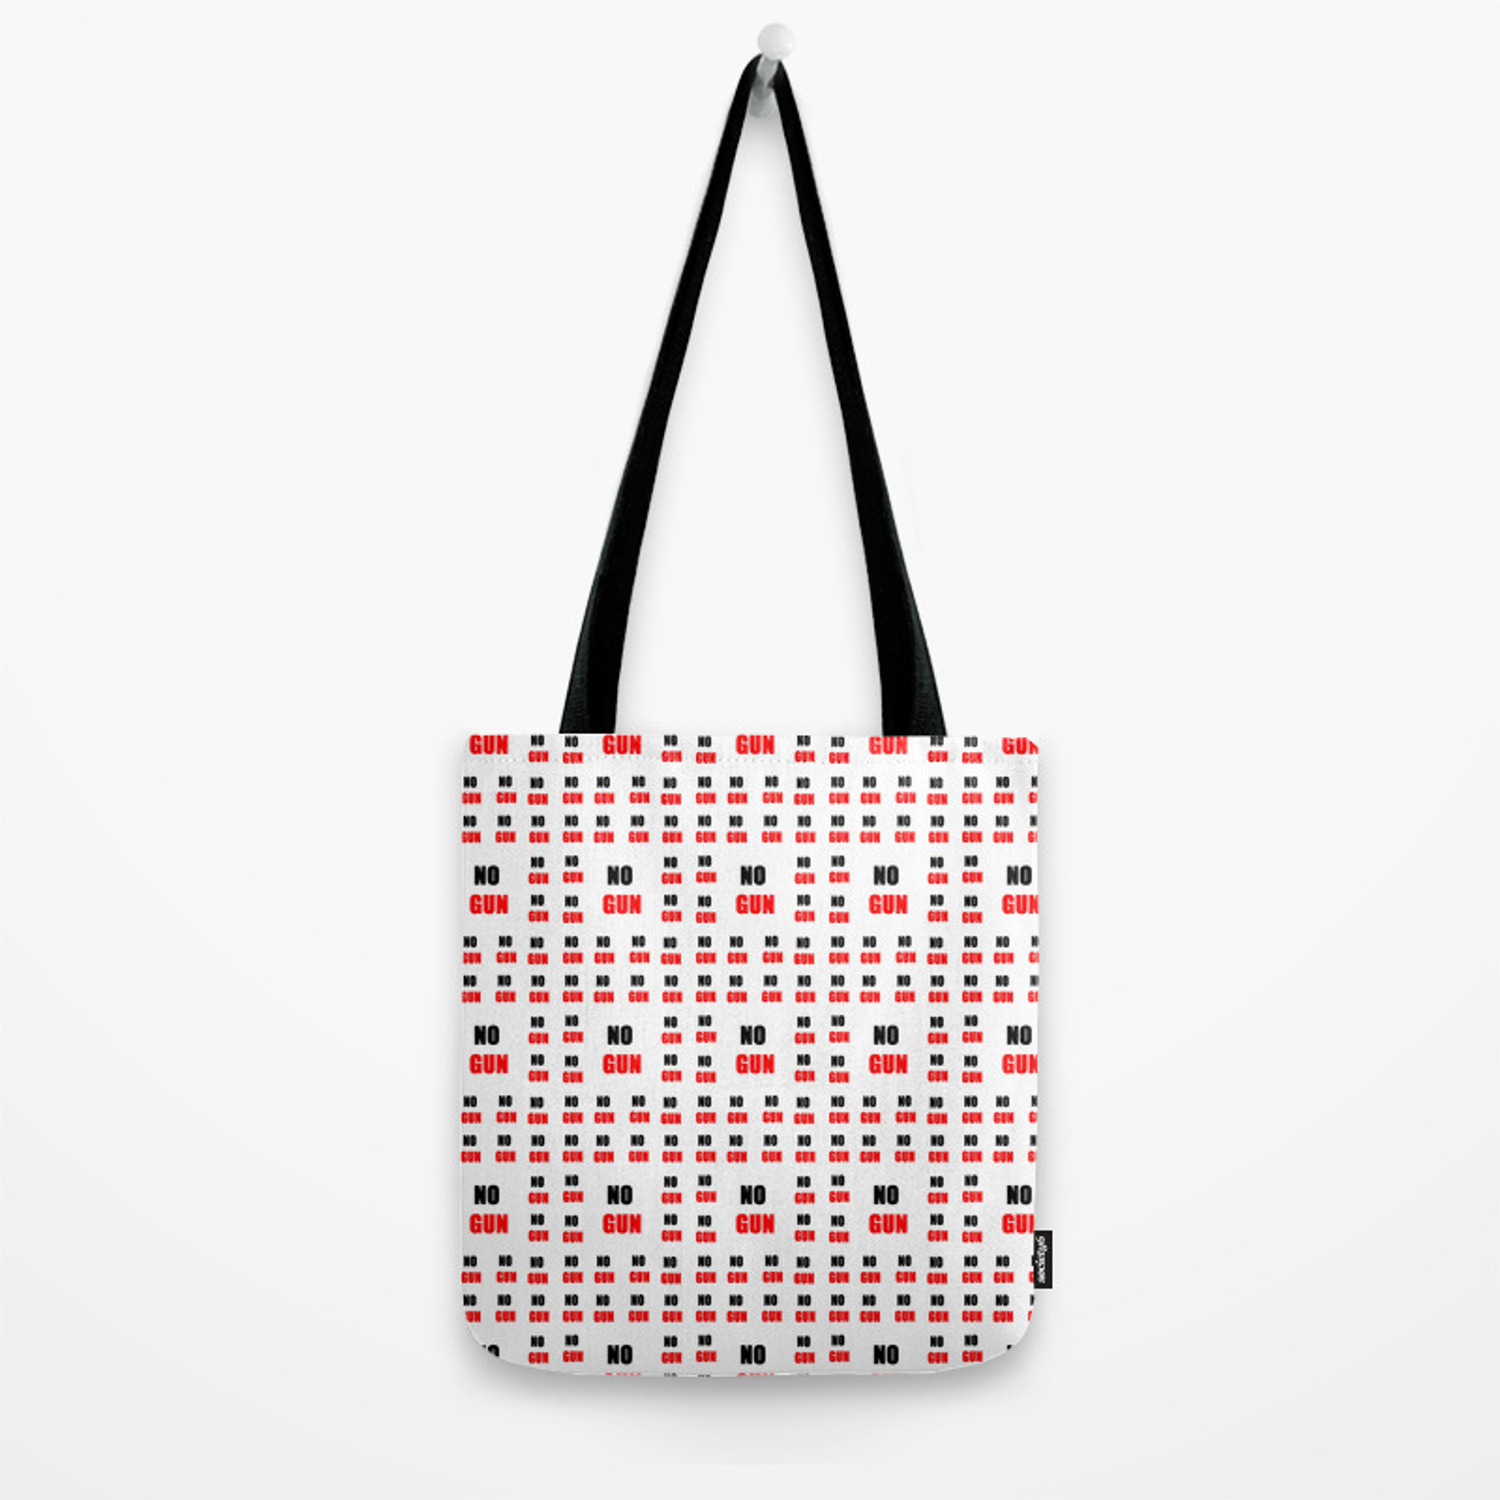 no gun 2– rebel, wild,prohibition,peace,nra,pacifism,weapon  Tote Bag